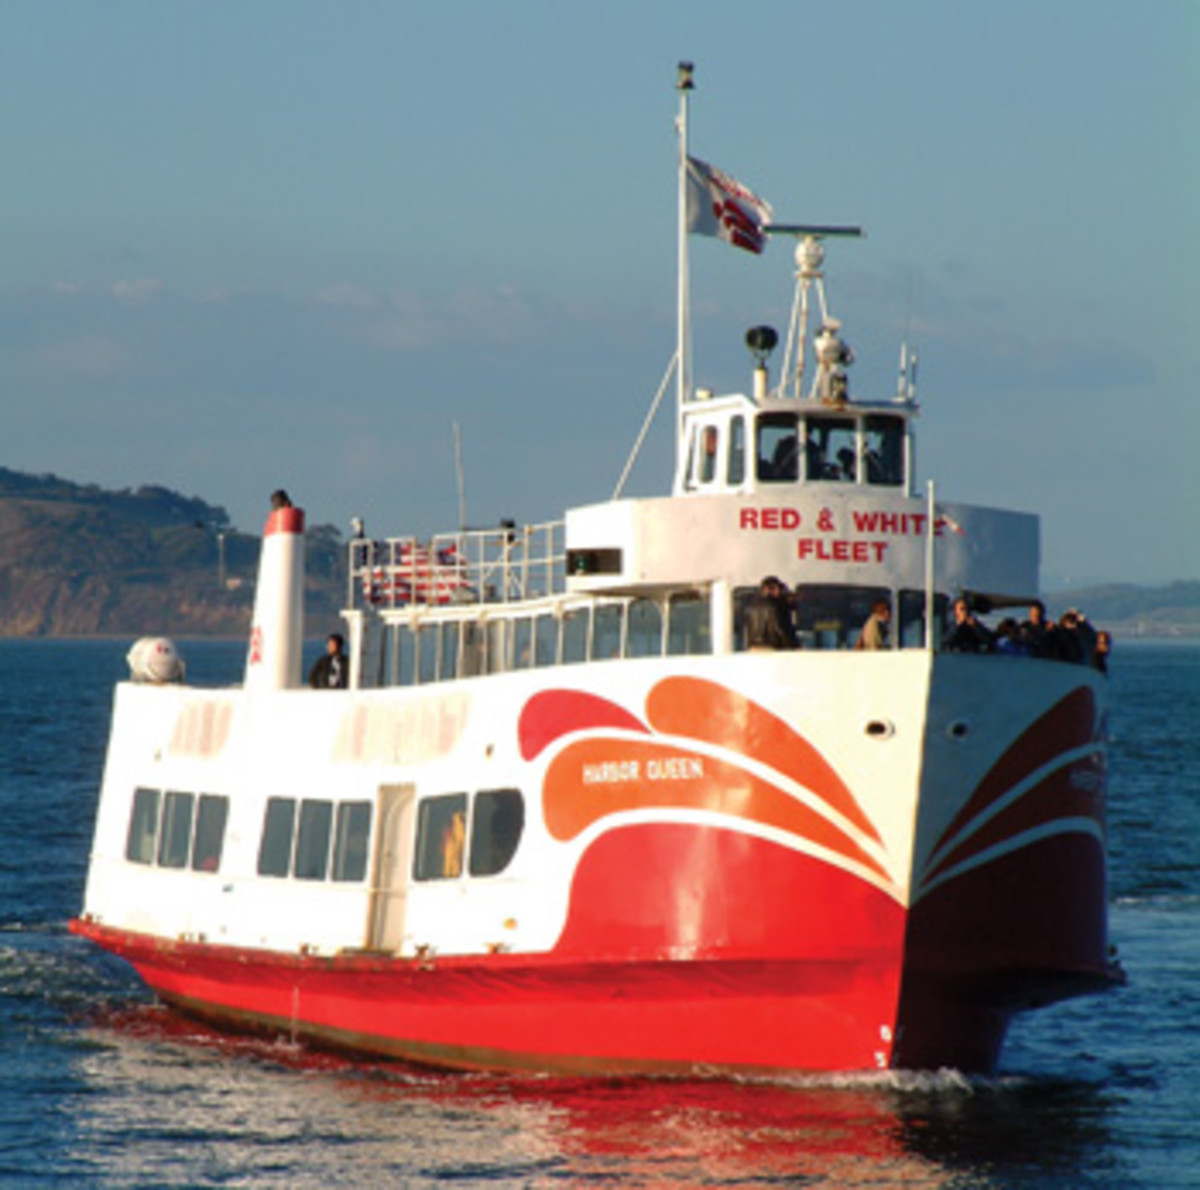 San Francisco's Red & White sightseeing vessels use biodiesel, but limited infrastructure has made it difficult for boaters to find the fuel.